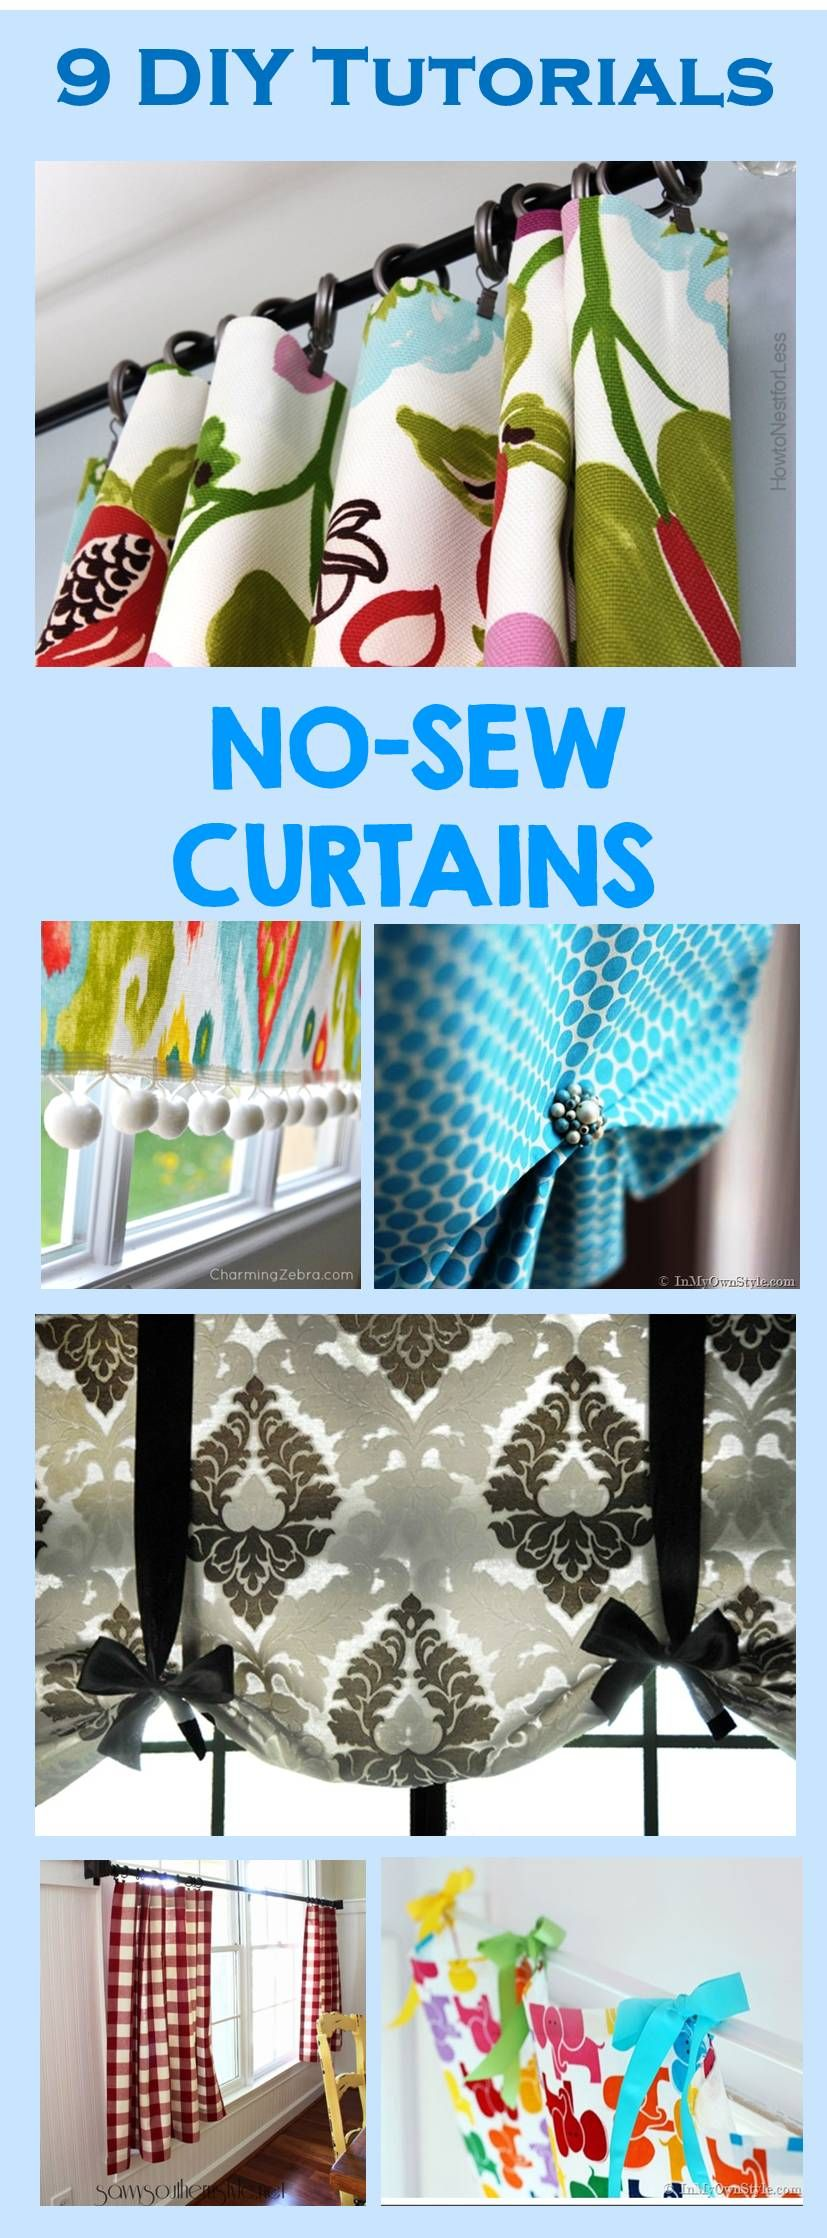 9 Simple Diy Tutorials How To Make No Sew Curtains